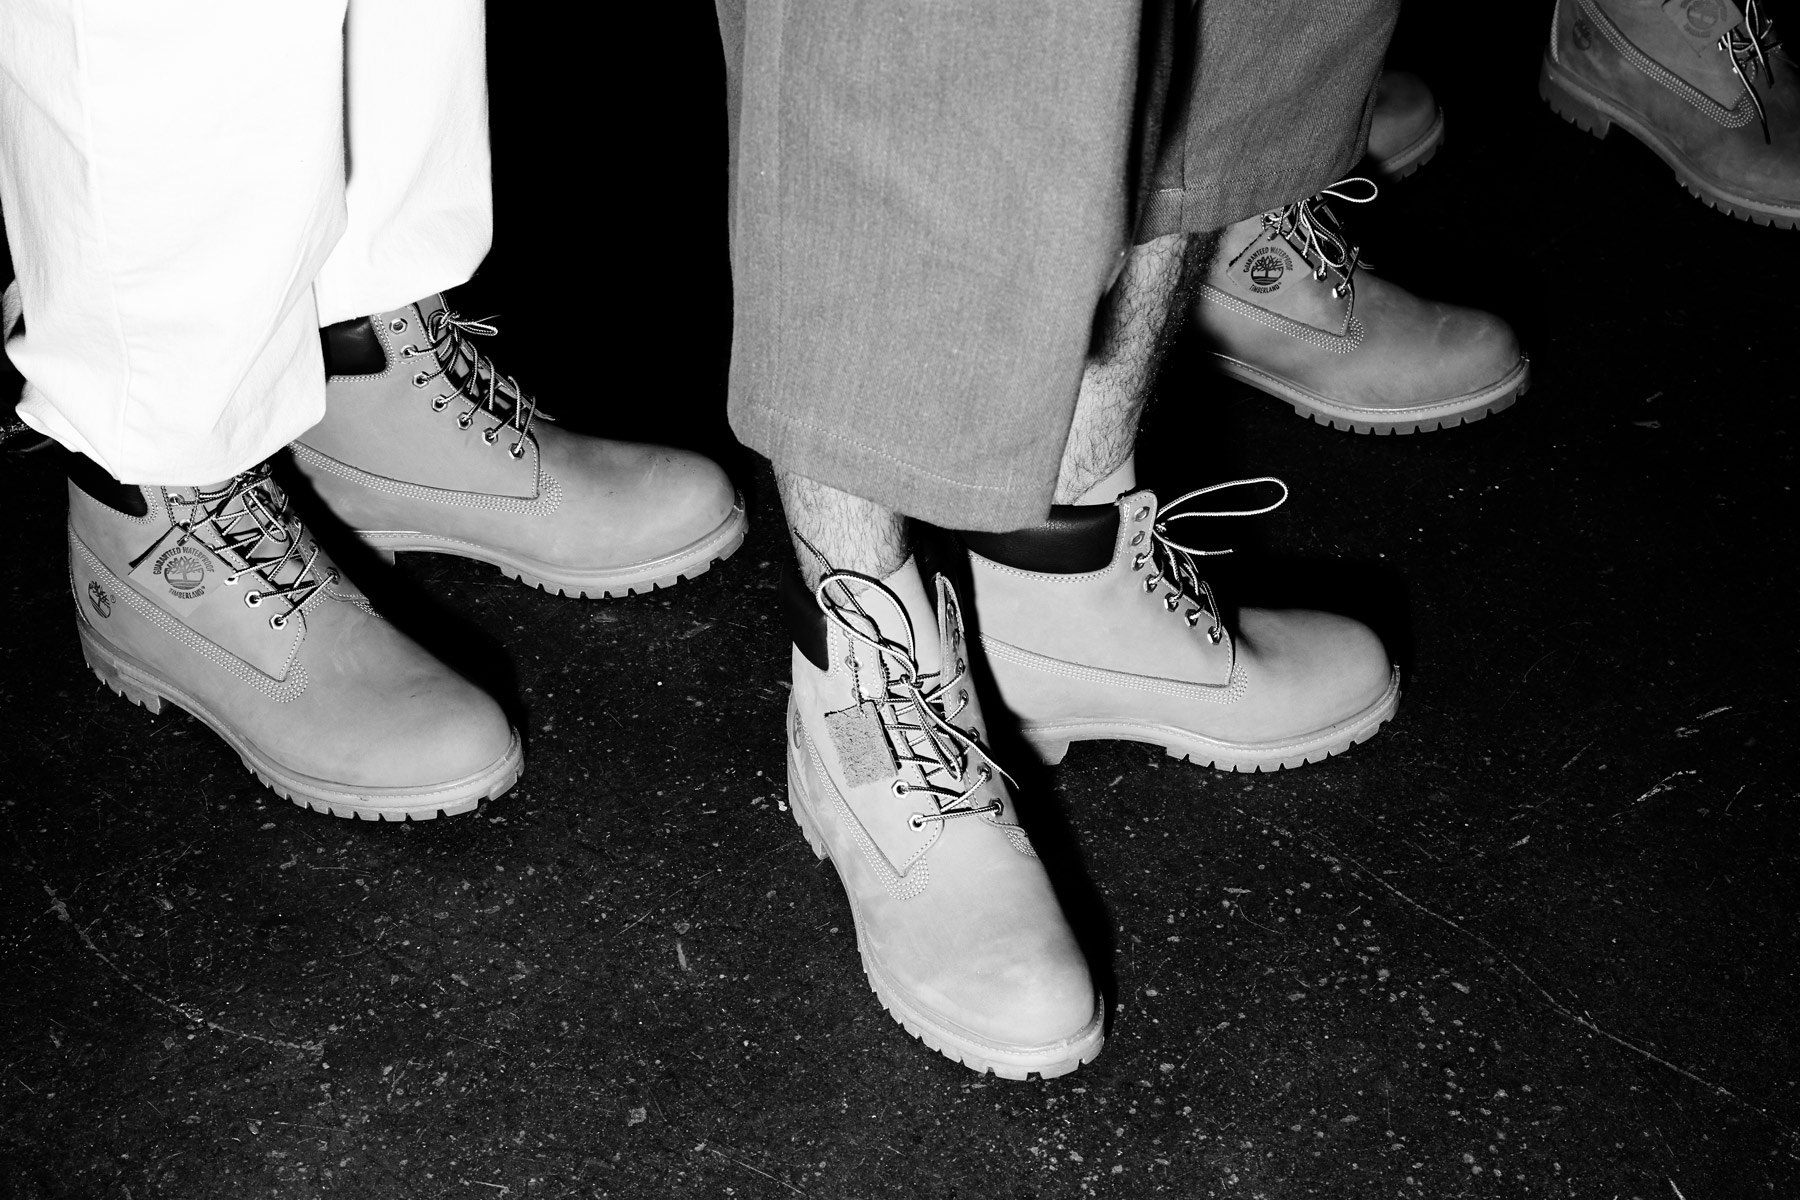 Timberland boots backstage at the Willy Chavarria menswear show for Spring 2019. Photography by Alexander Thompson for Ponyboy magazine.